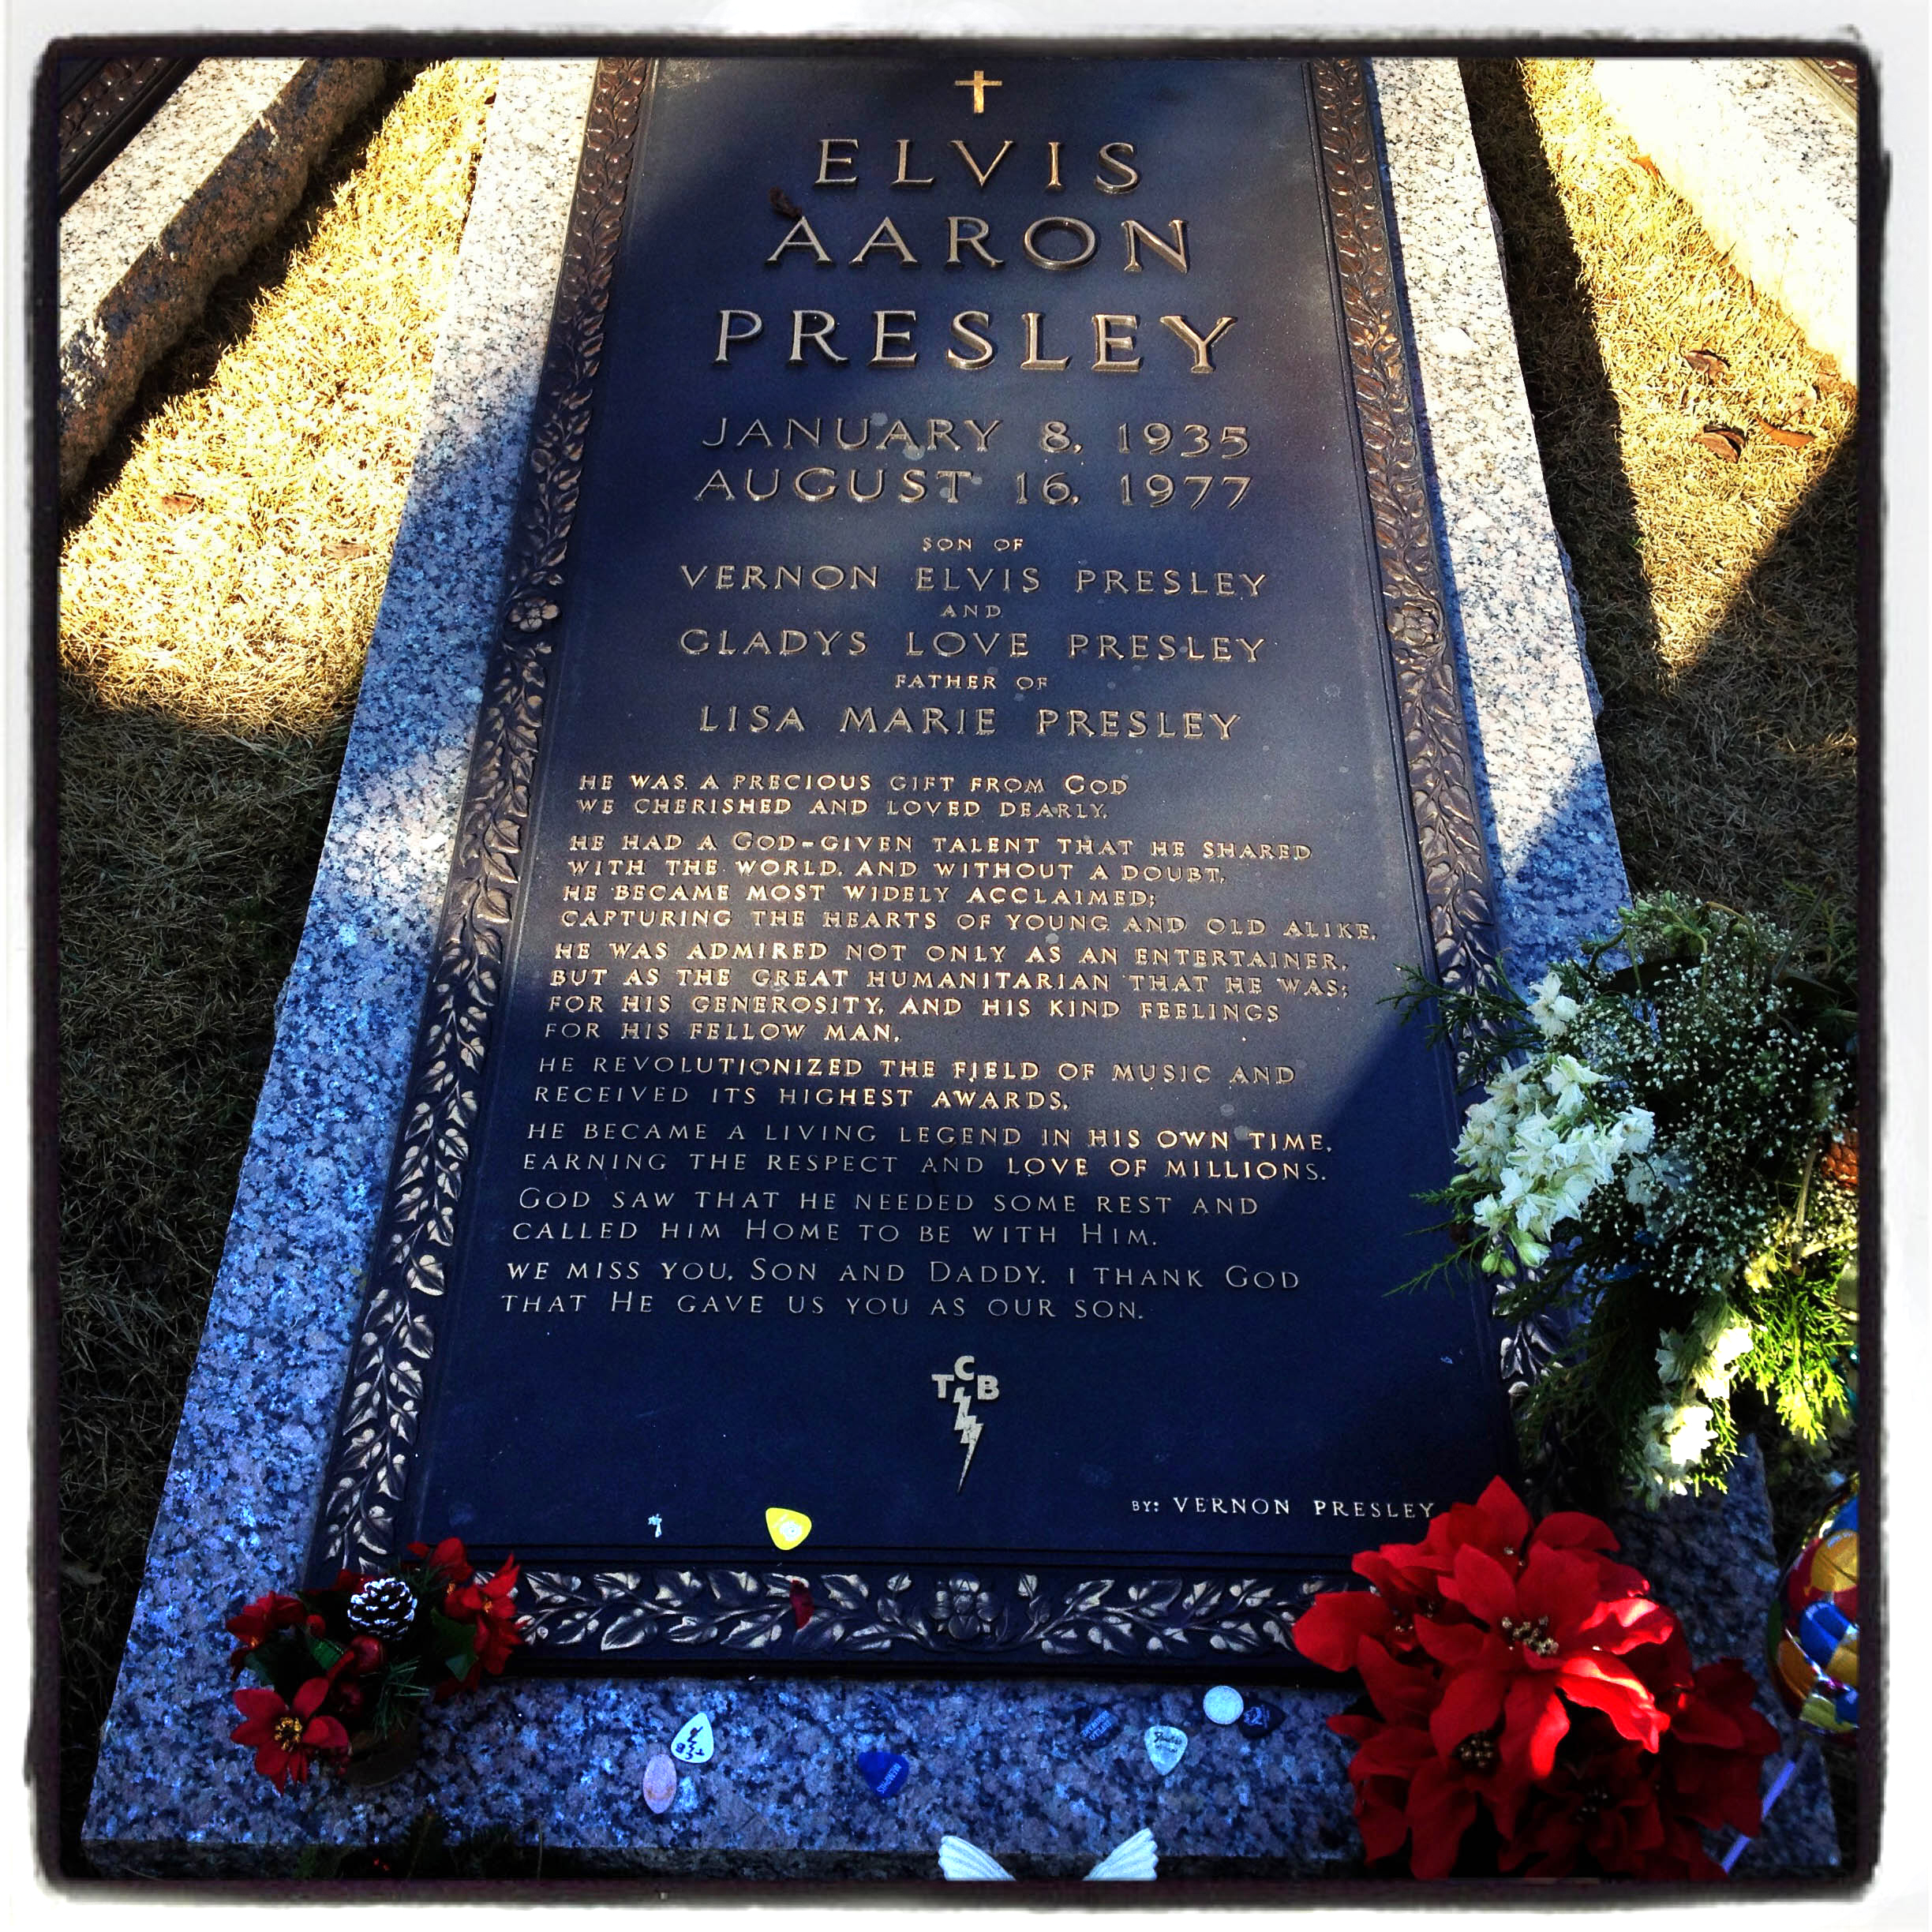 MEMPHIS, TN 01/03/14 Elvis Presley's gravesite is located in the Meditation Garden on the grounds of Graceland.  CLOE POISSON|cpoisson@courant.com